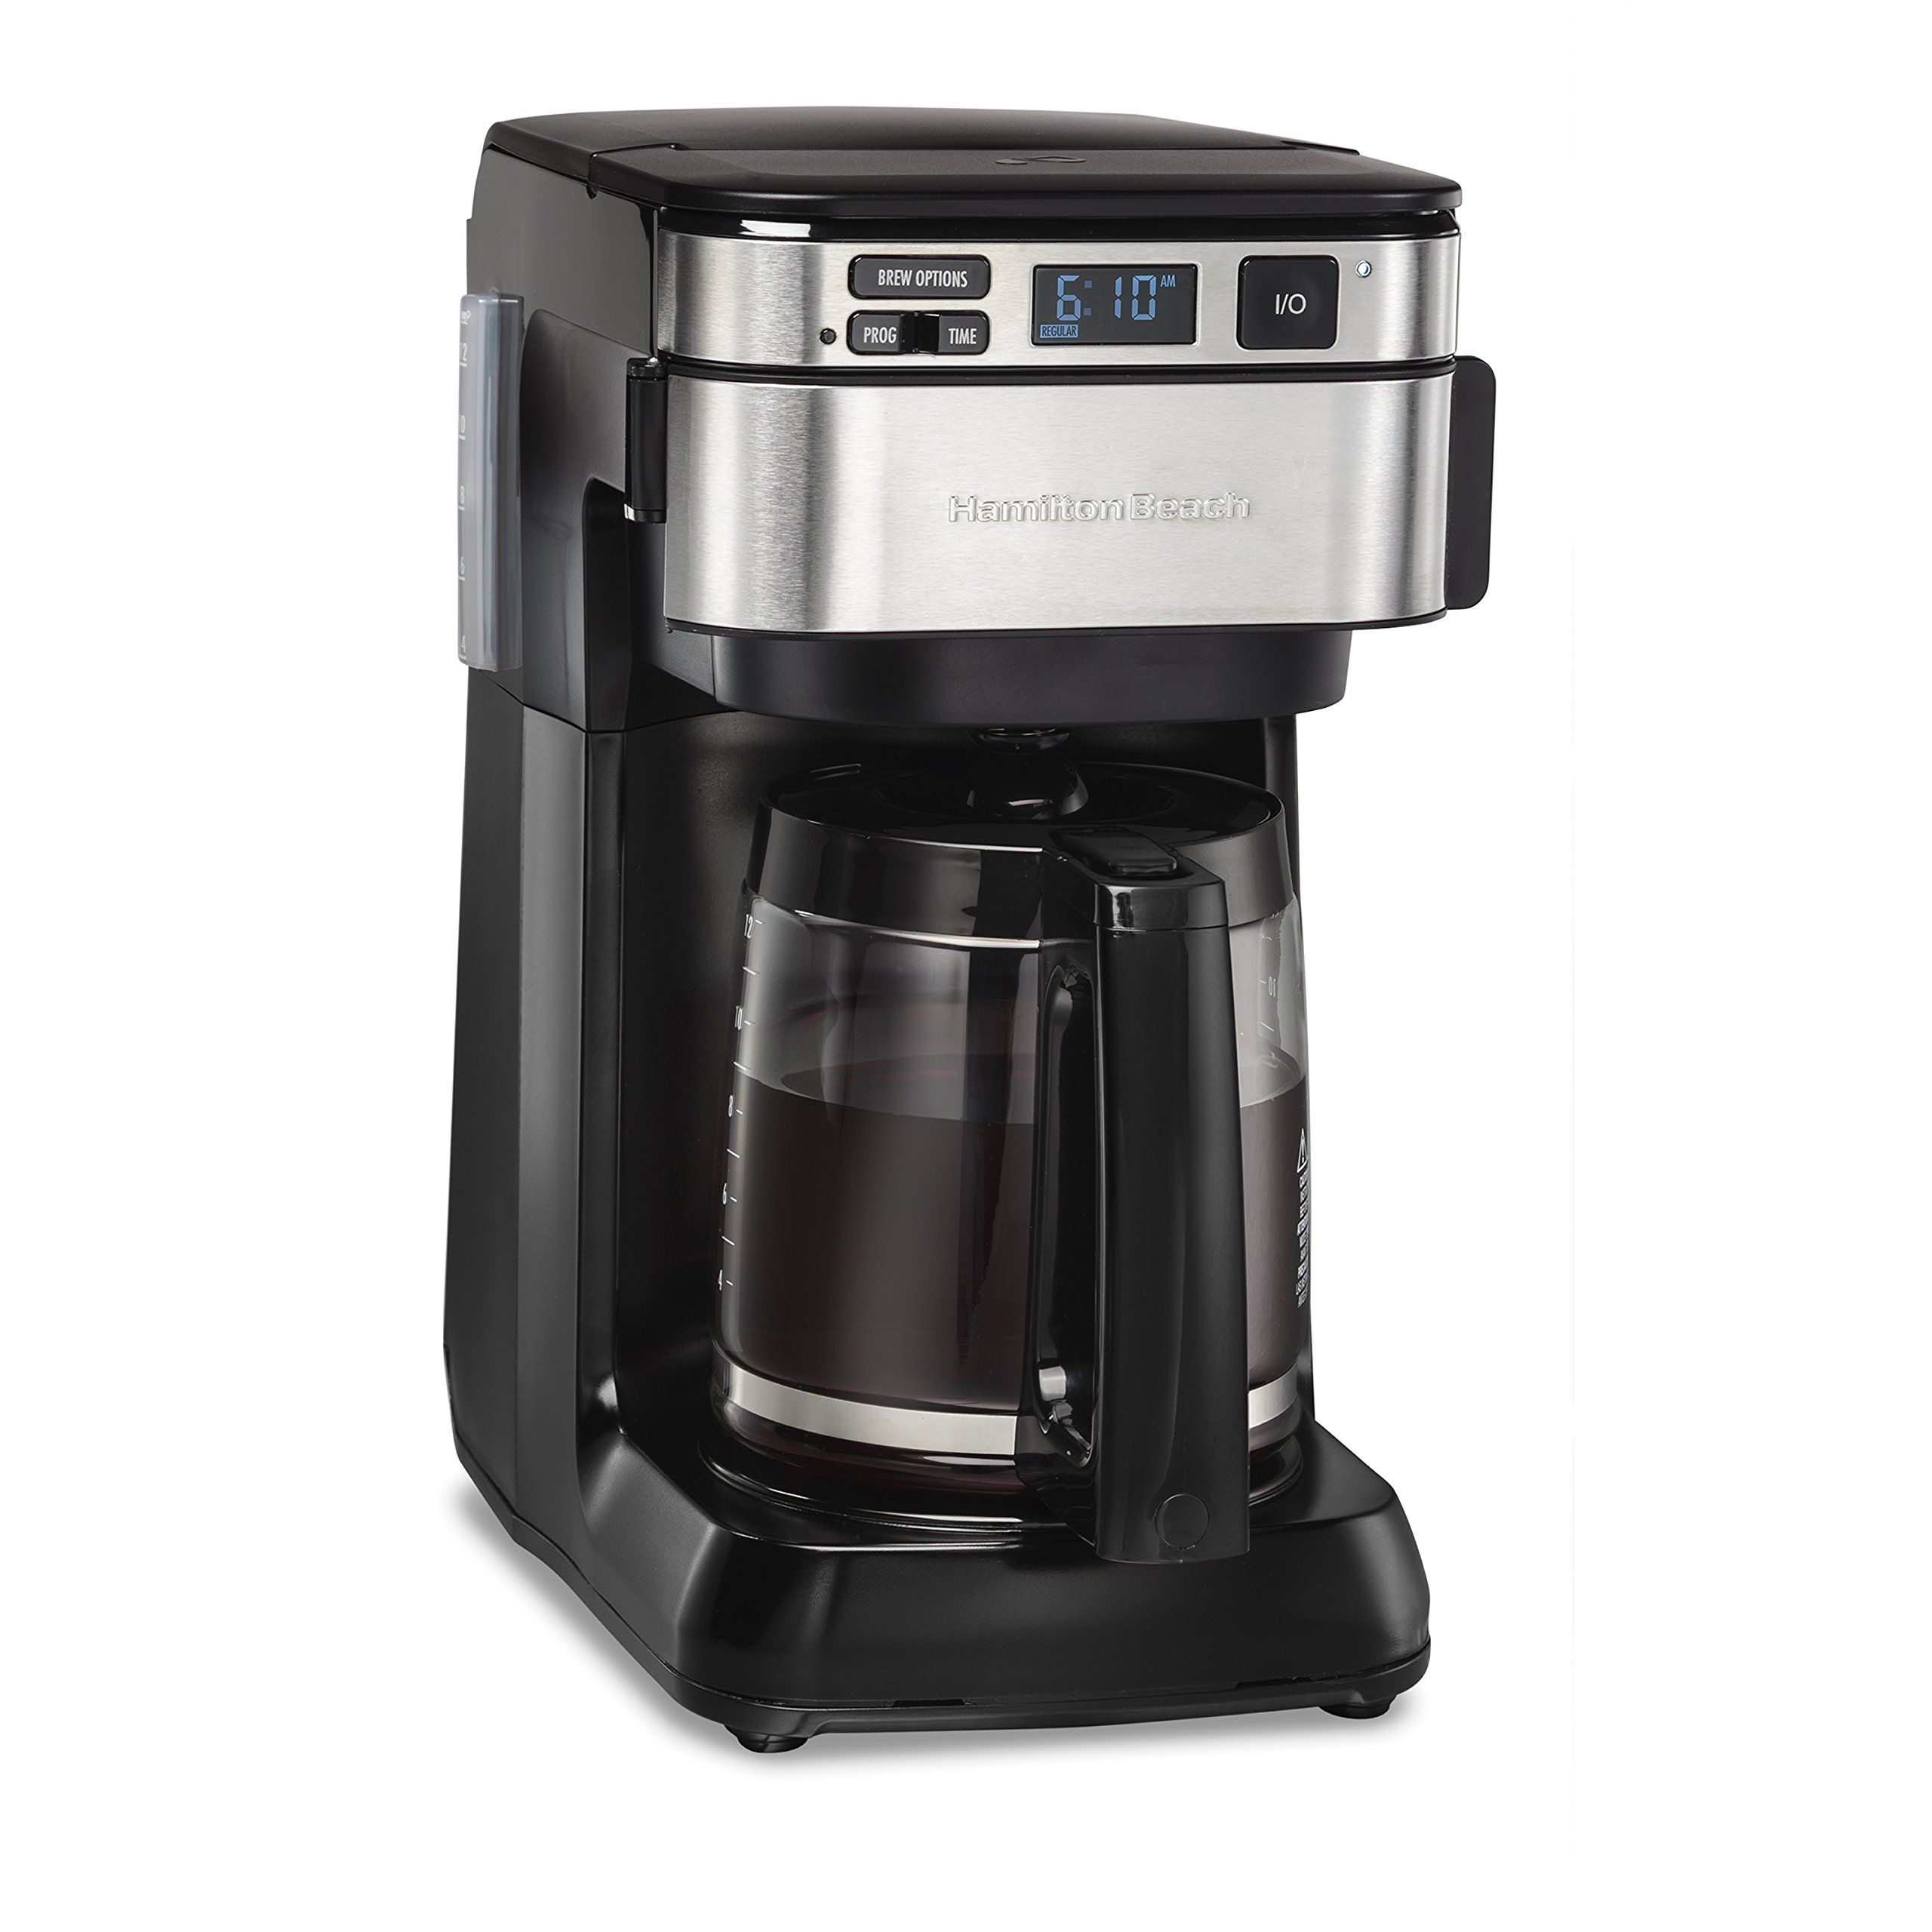 Hamilton beach coffee maker black see this great product